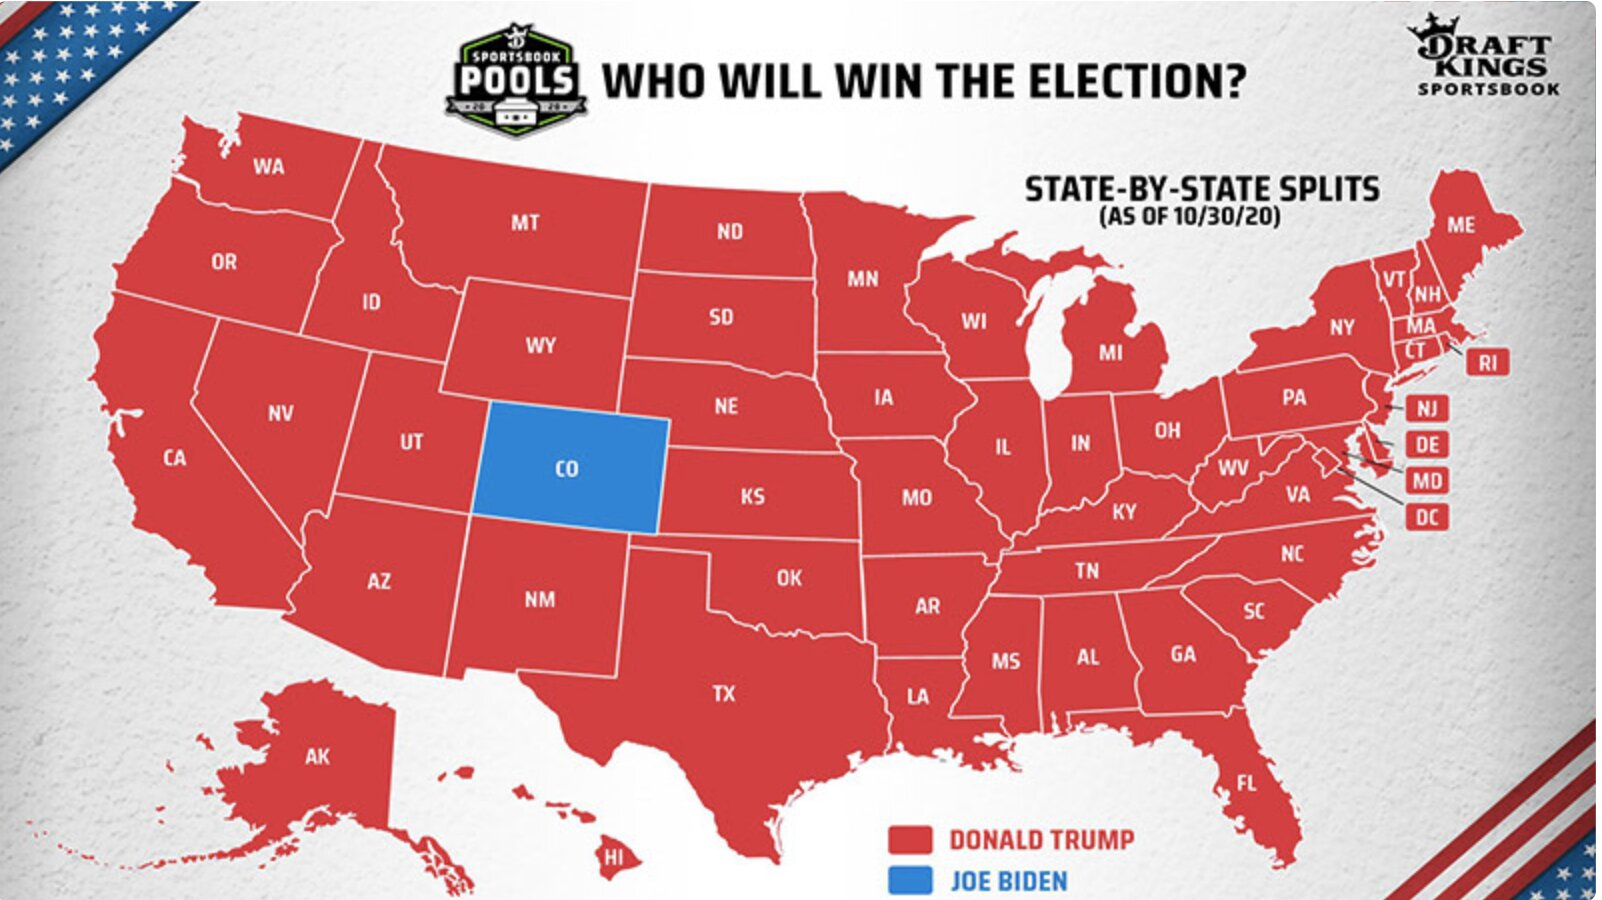 Top Gambling Site Shows Americans In 49/50 States Betting On Trump Victory